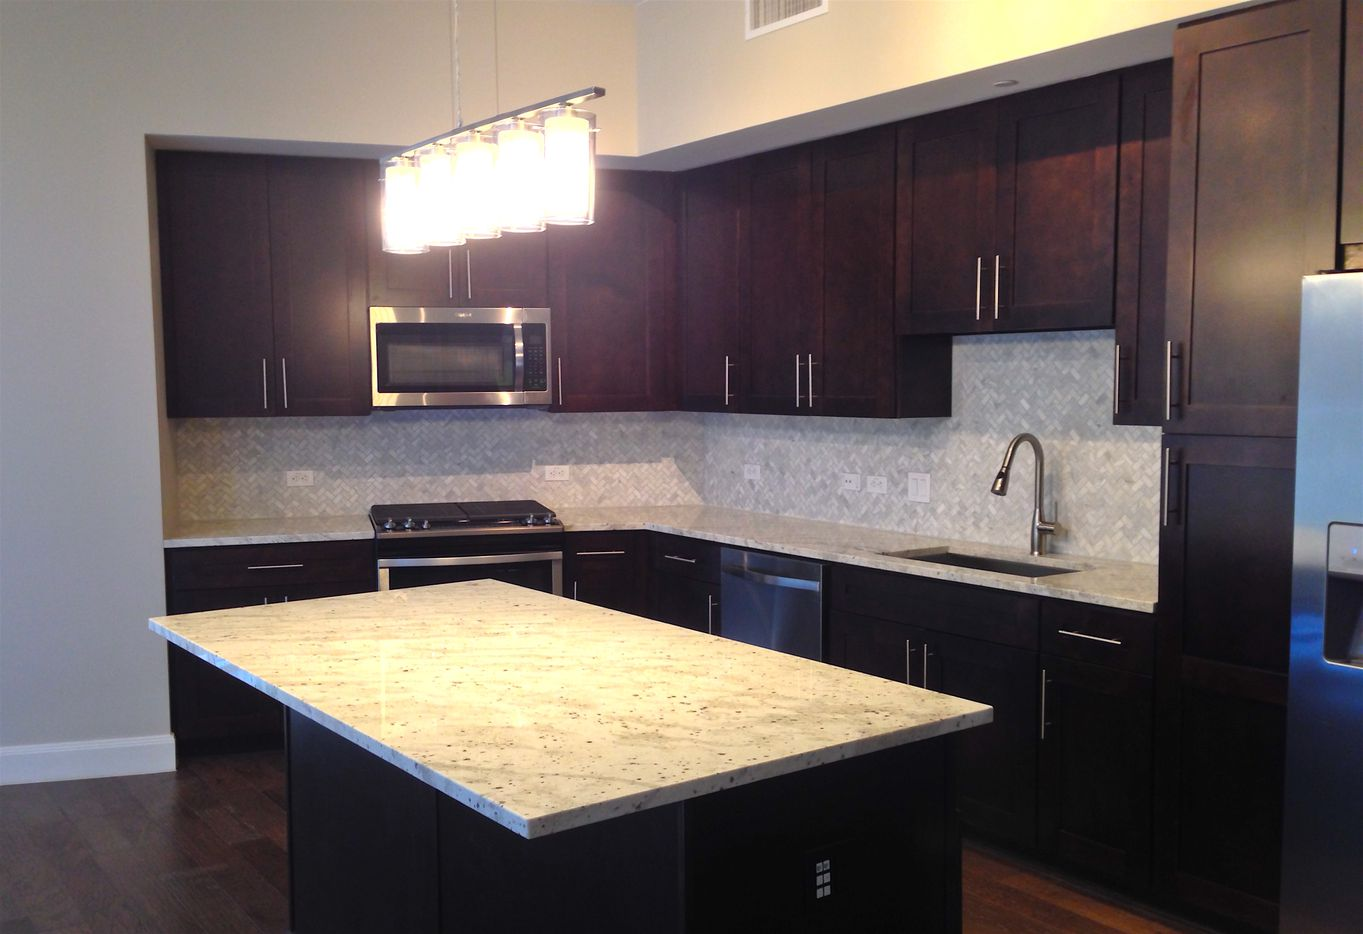 The kitchen in The Katy apartments on Cole Avenue.